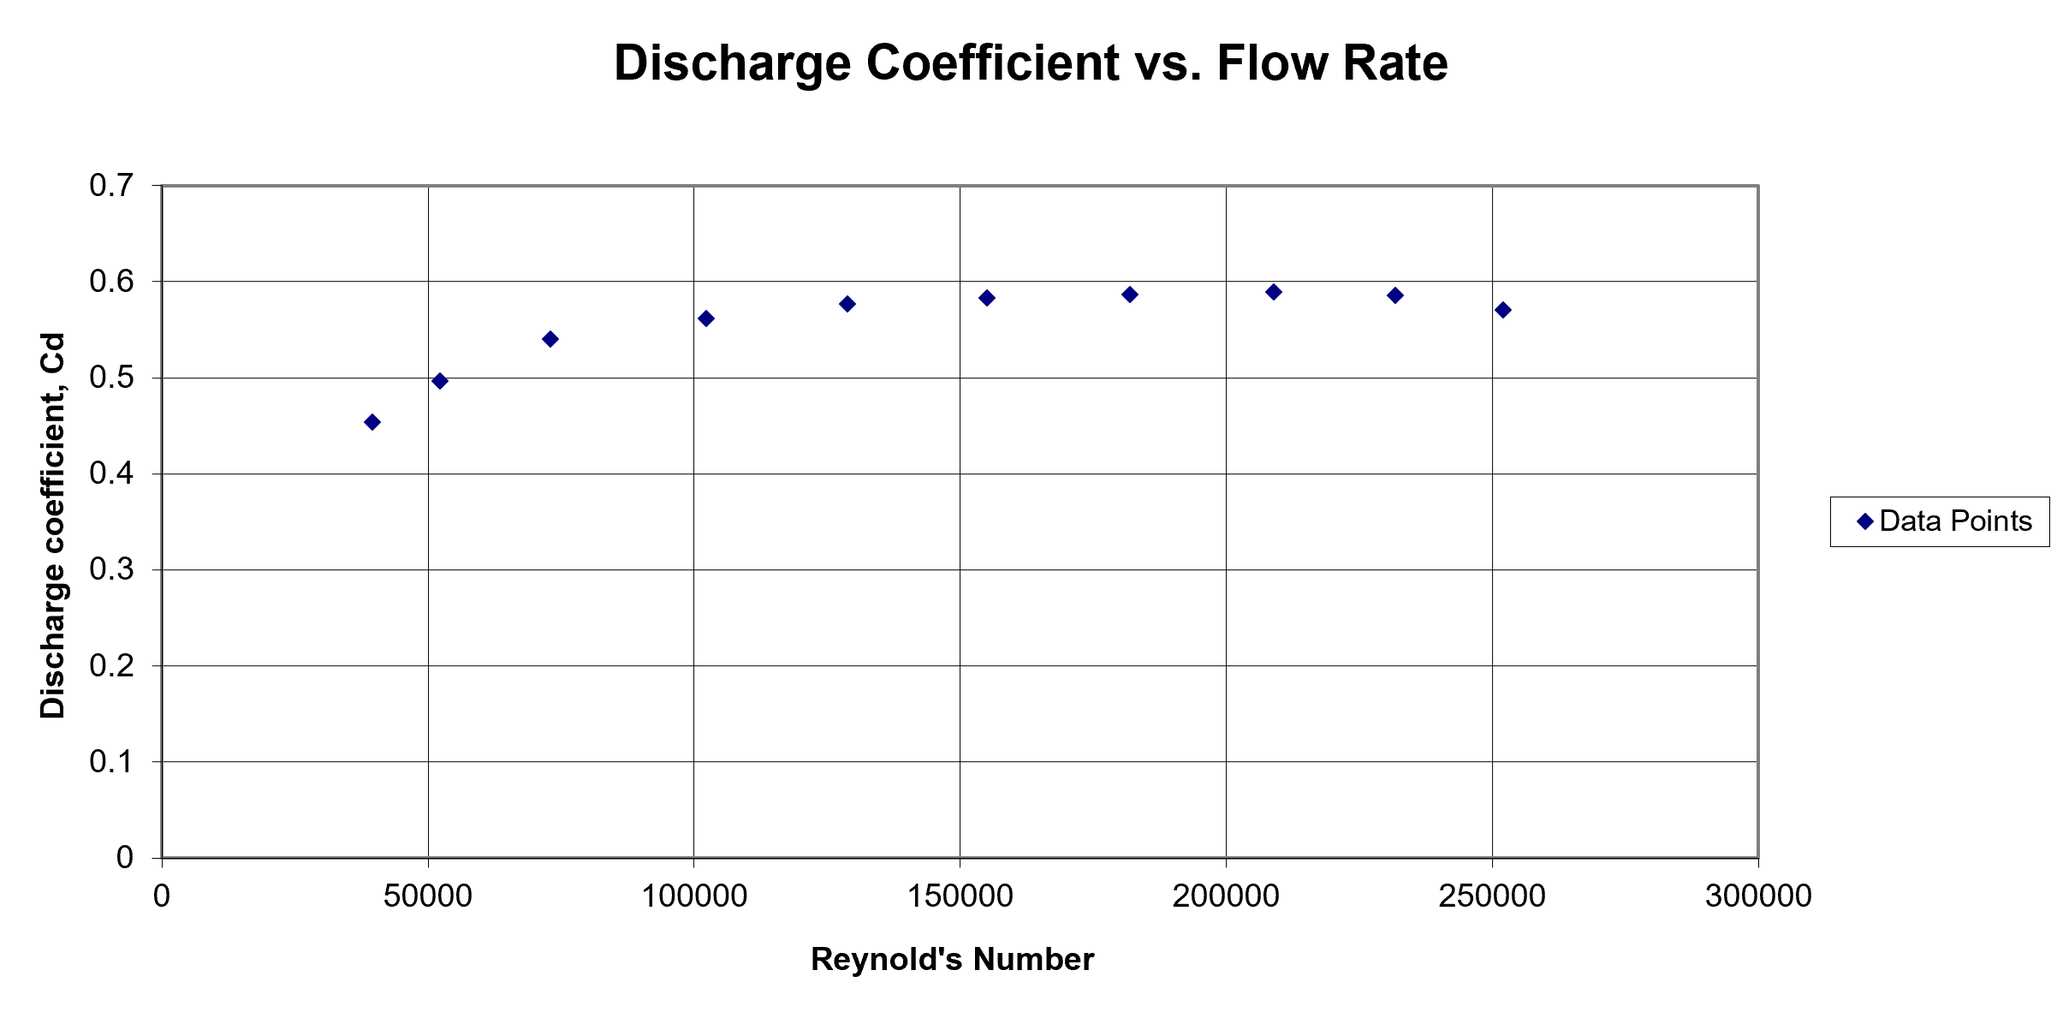 Discharge Coefficient As a Function of the Reynolds Number